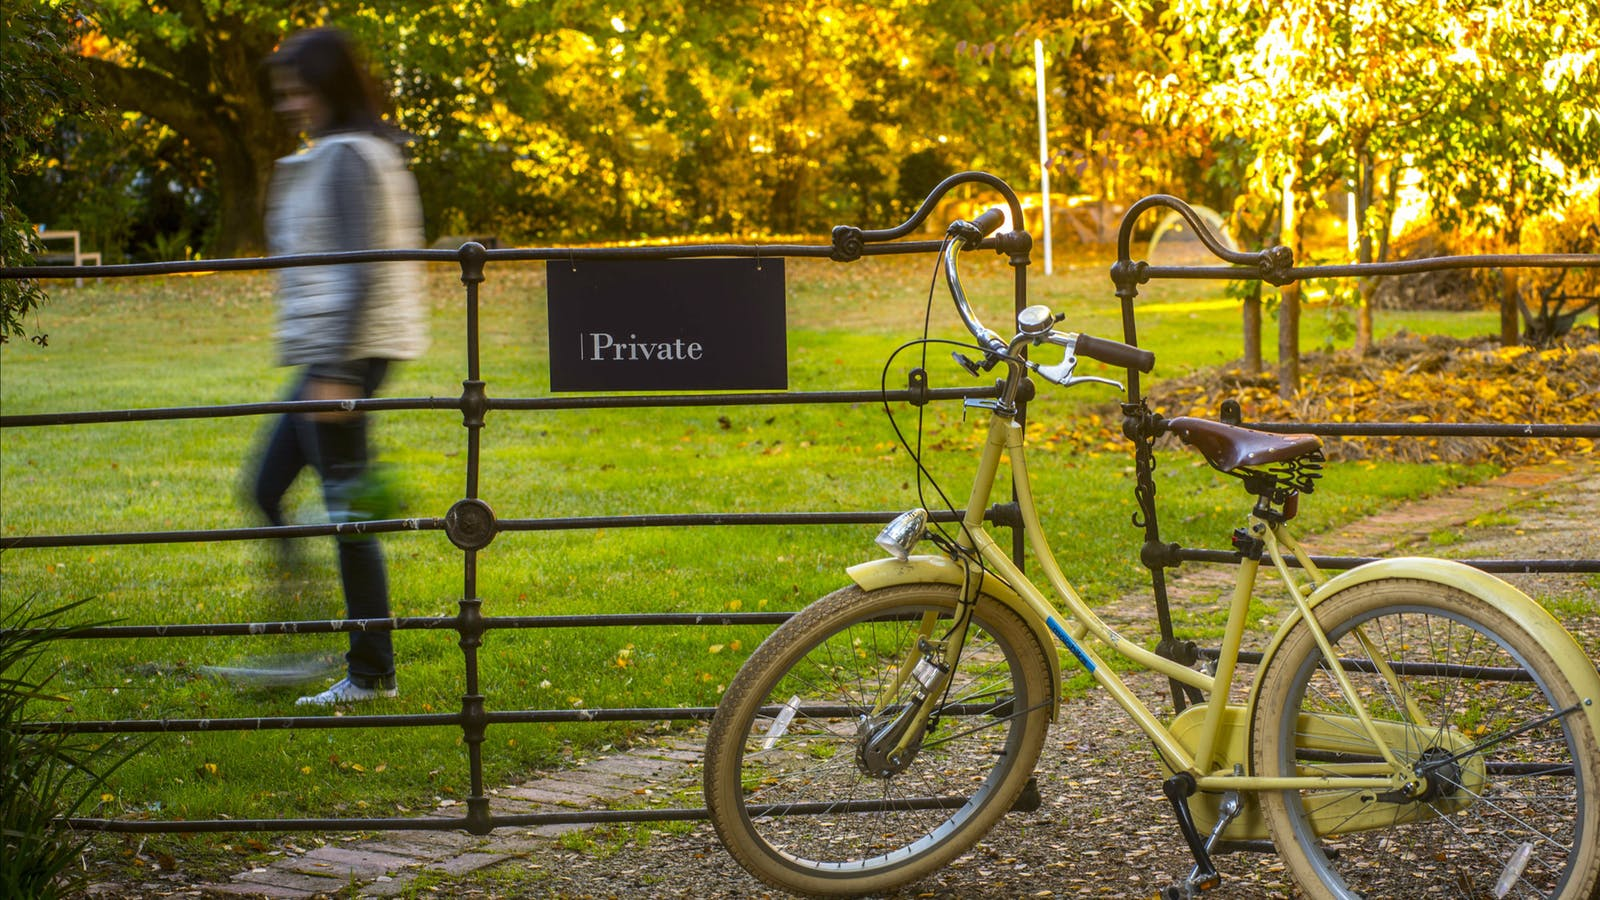 Cycle friendly accommodation